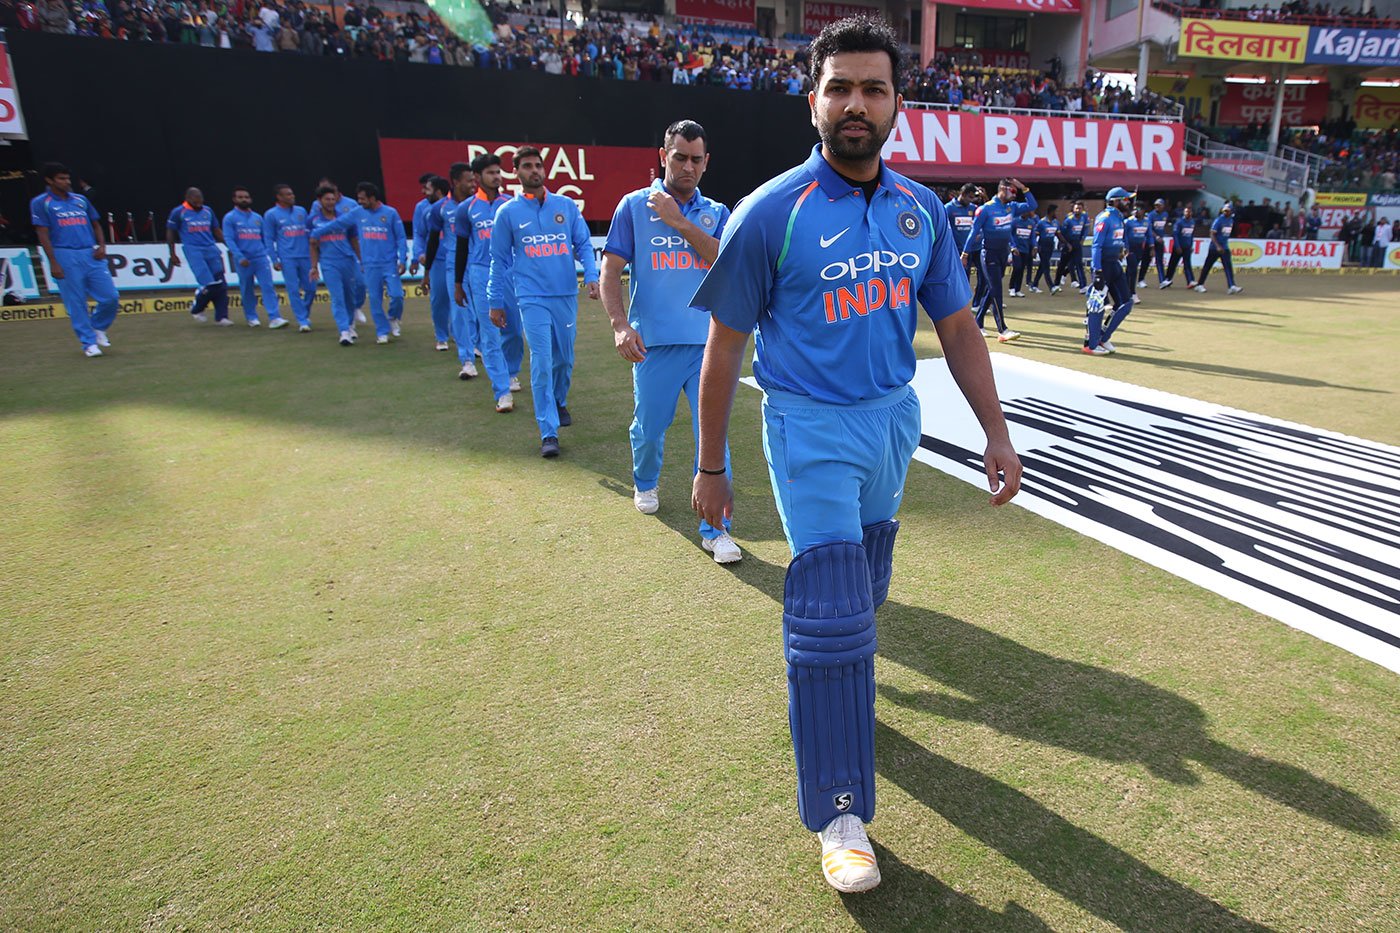 Team India won the Asia Cup 2018 under leadership of Rohit Sharma | AFP